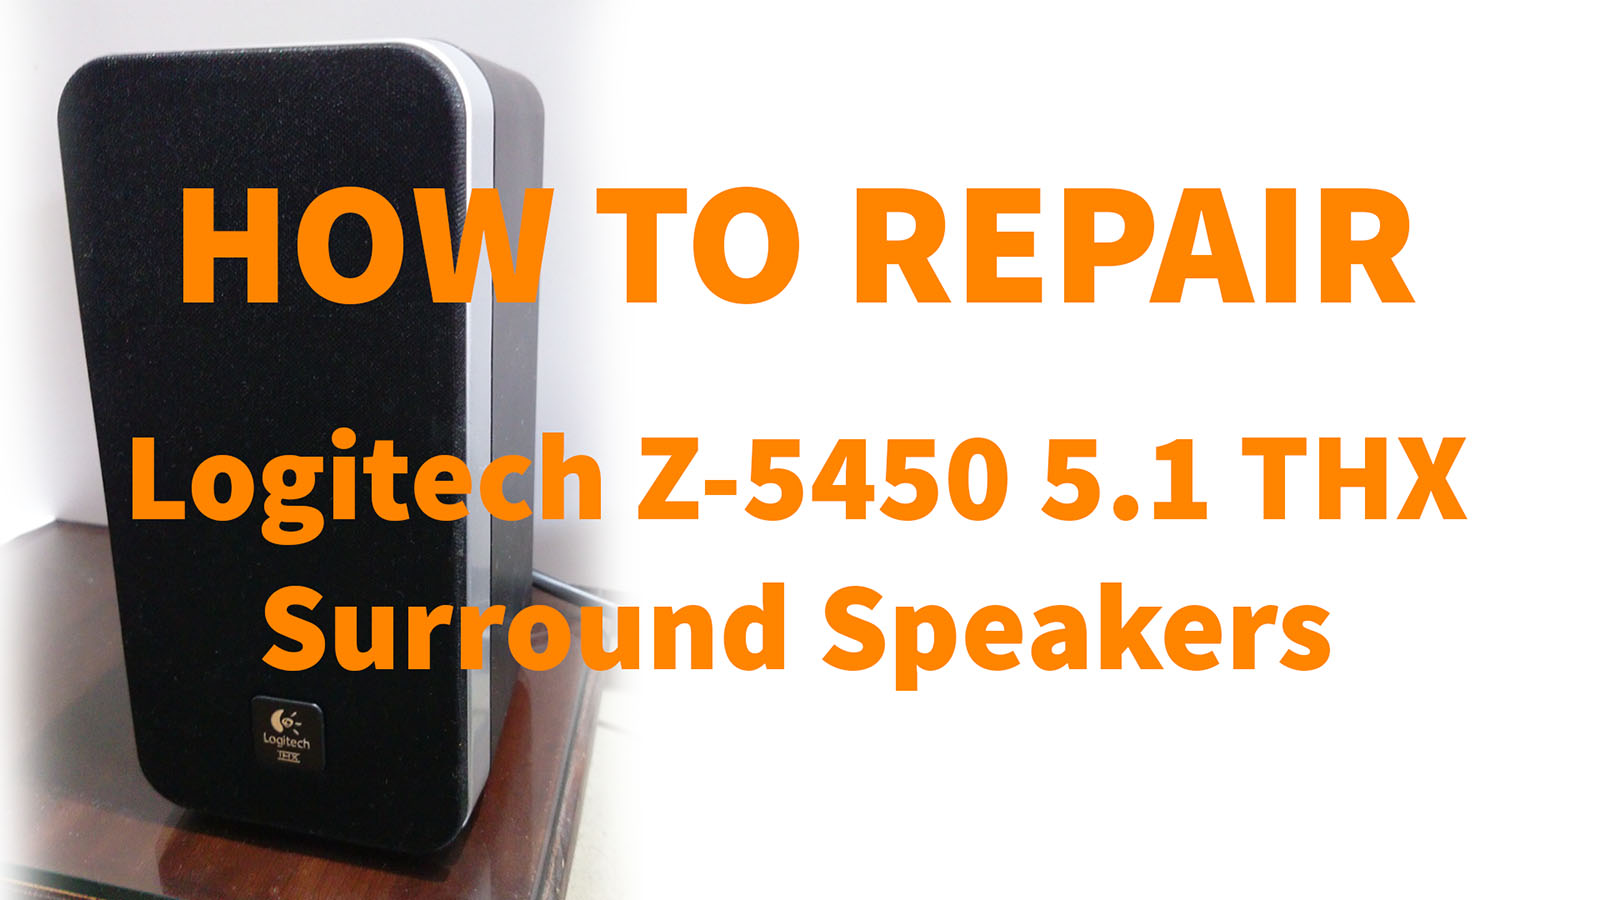 How to repair Surround Speakers